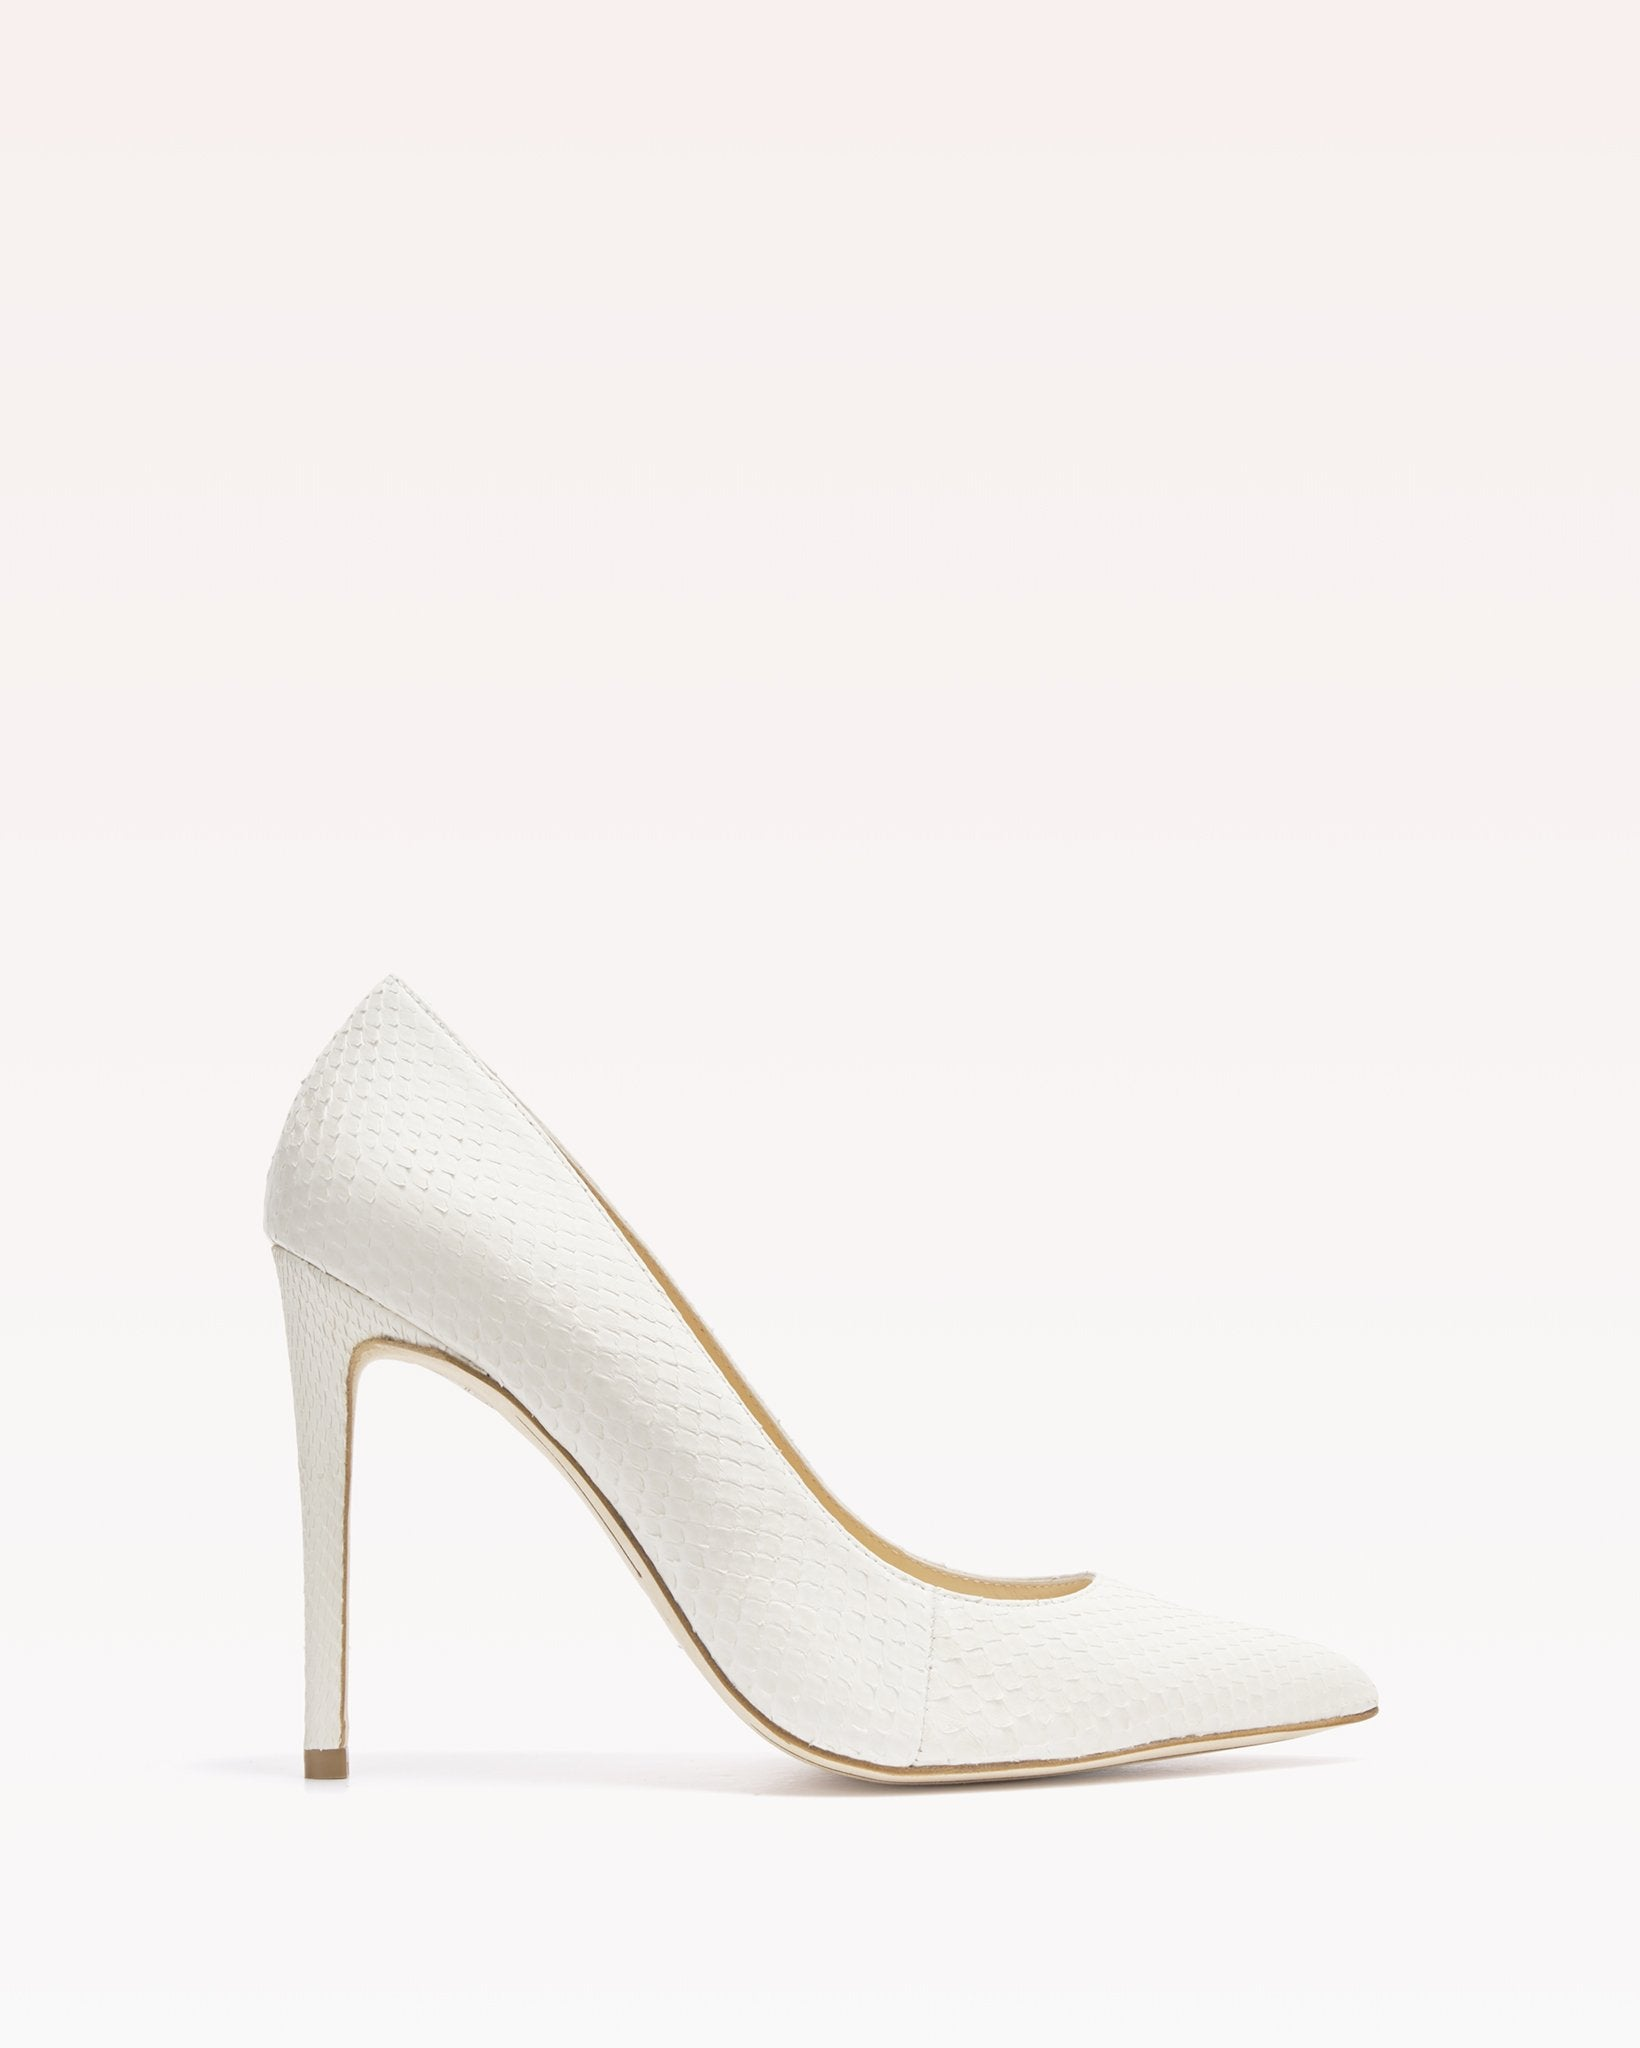 Piano Pointed Toe High Heel Pump in